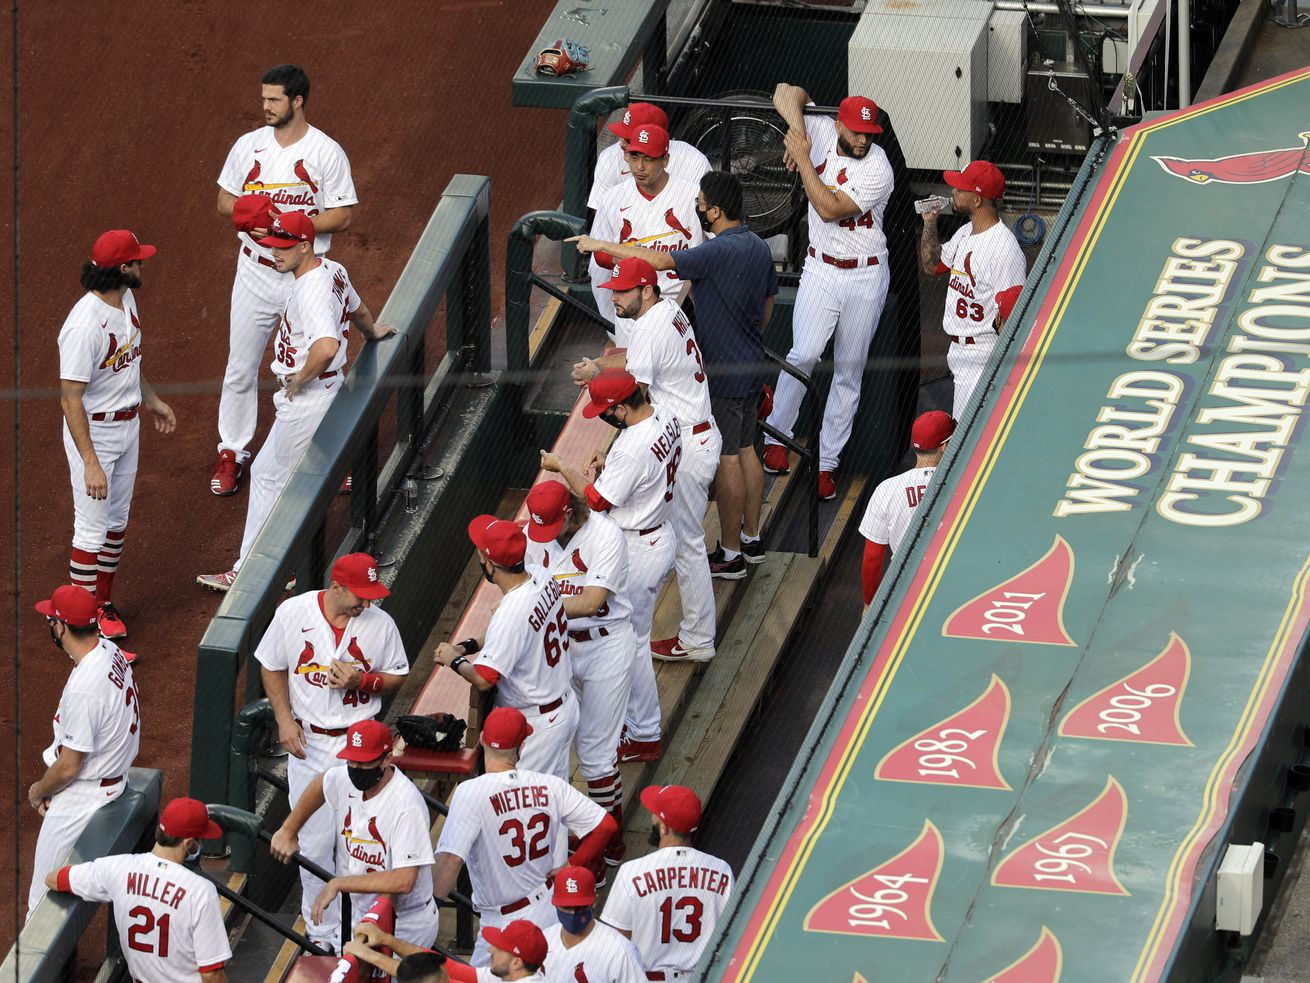 Cubs-Cardinals series postponed after another St. Louis player tests positive for coronavirus